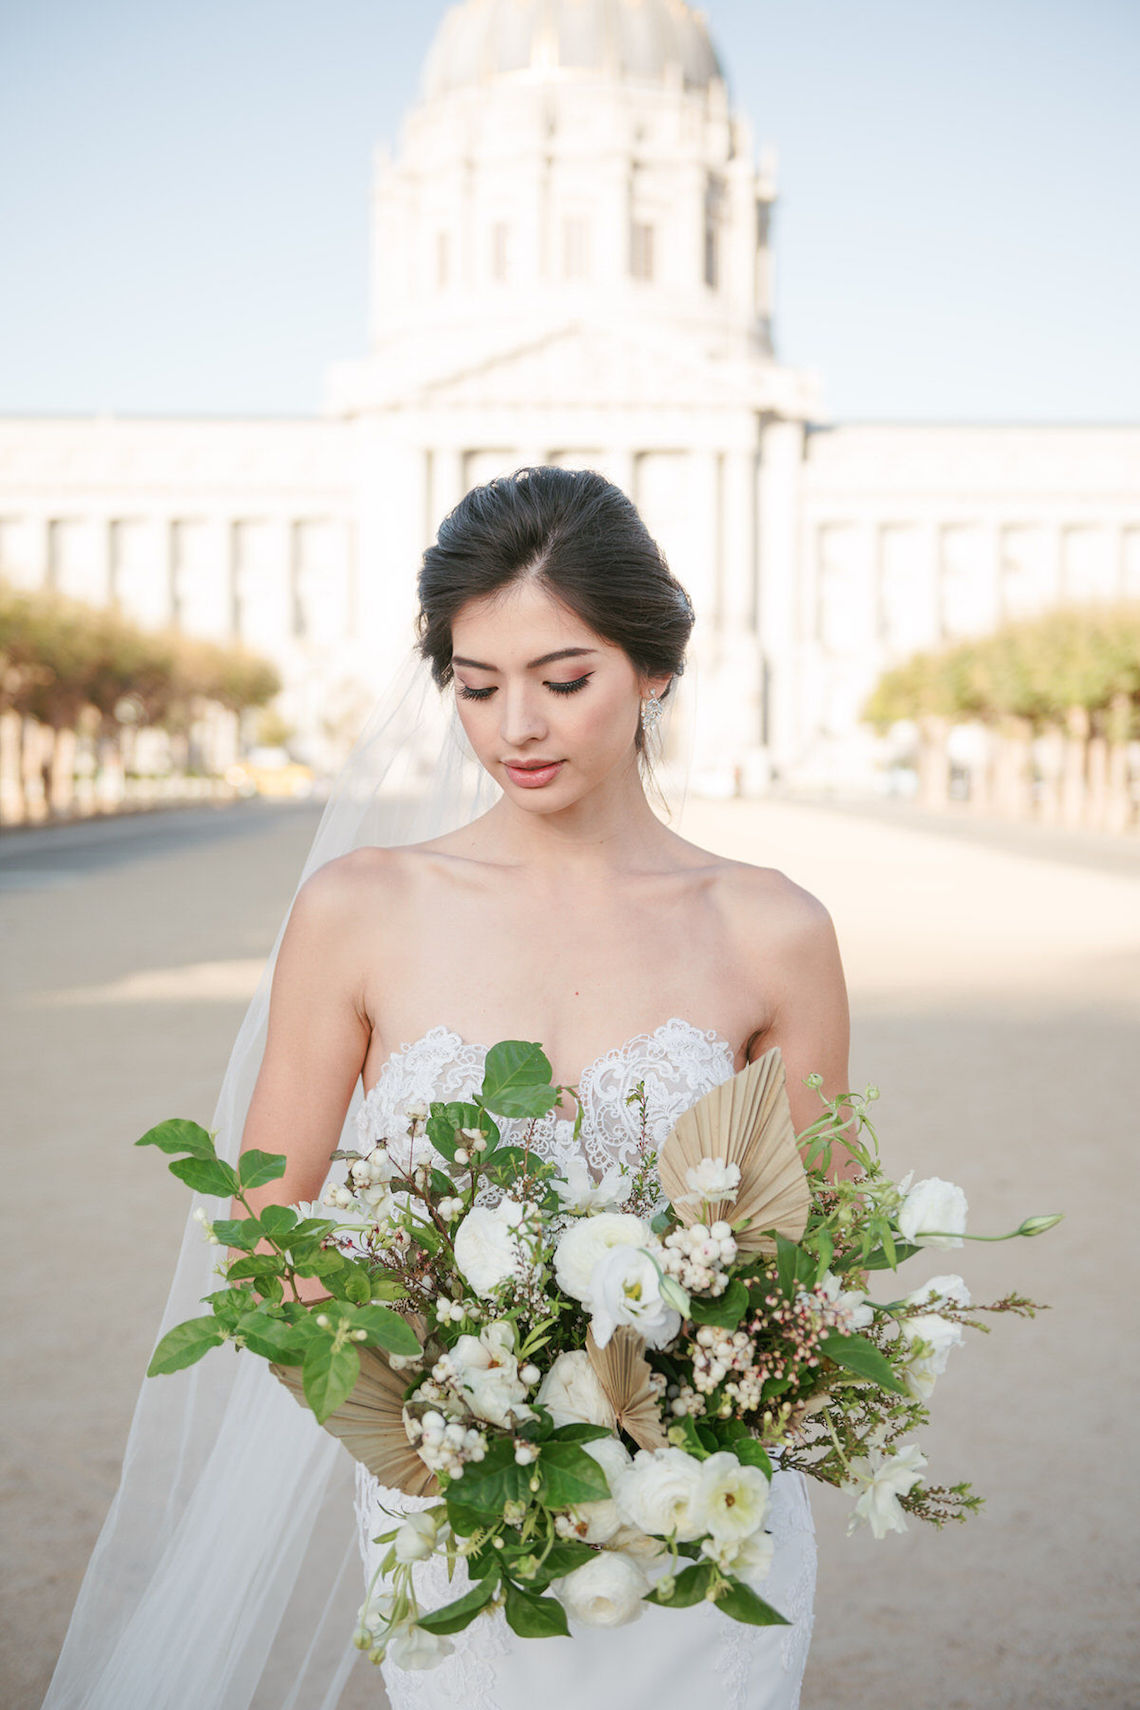 San Francisco City Hall Elopement Inspiration – Peony Park Photography 12